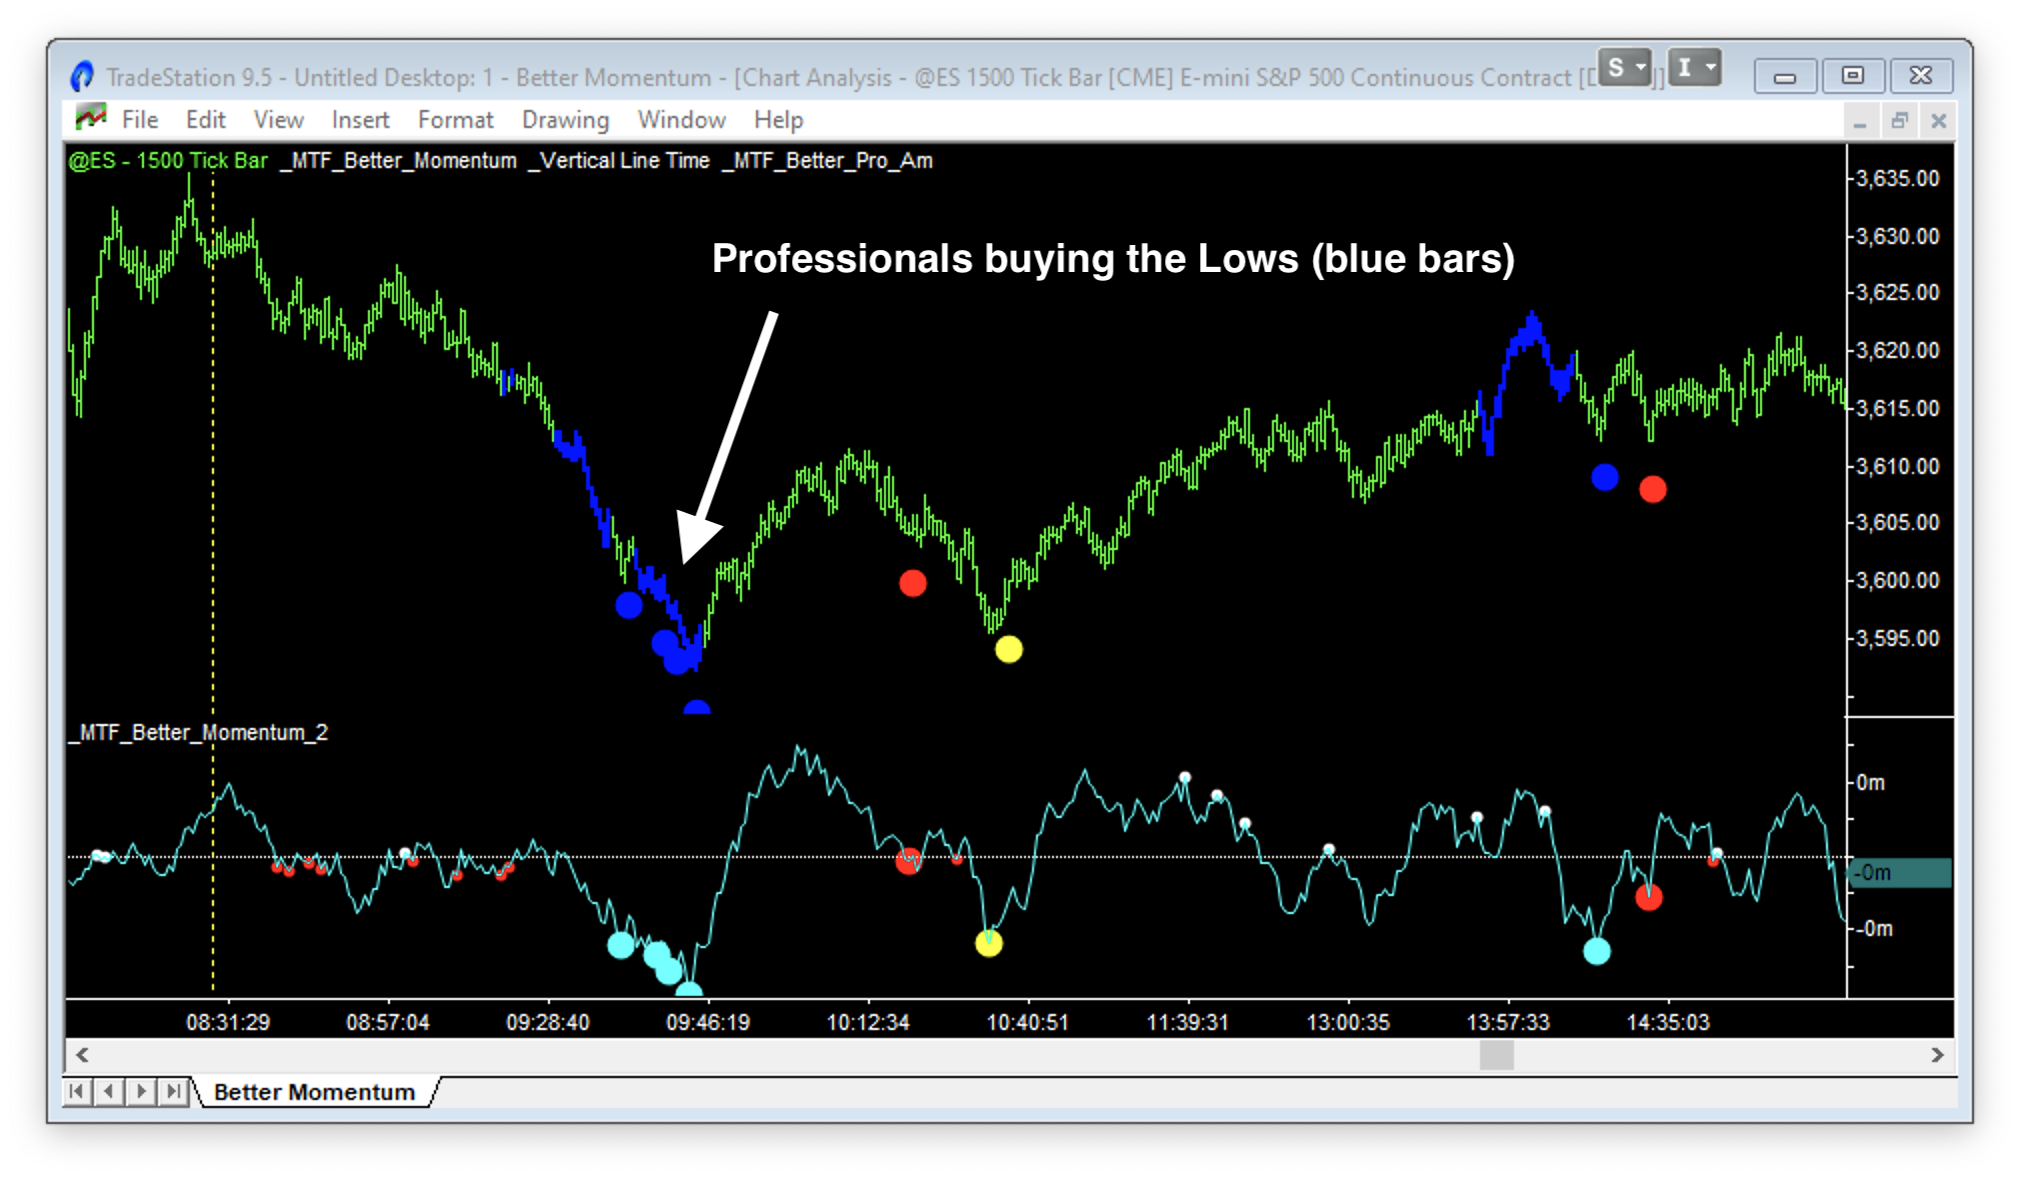 Better Pro Am indicator showing Professionals buying the Lows